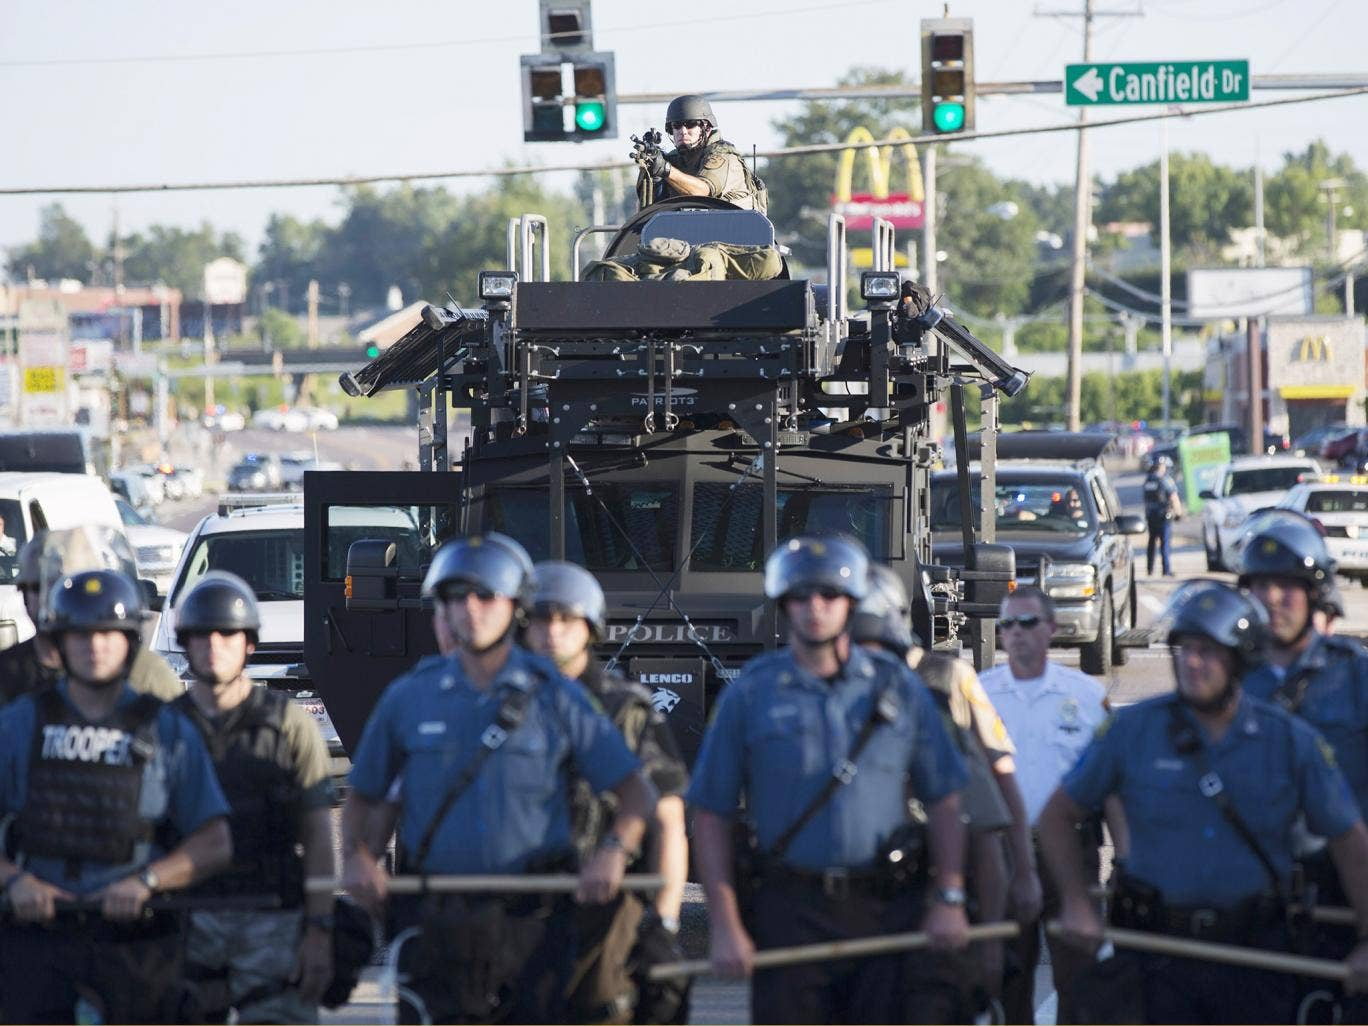 Riot police stand guard as demonstrators protest the shooting death of teenager Michael Brown in Ferguson